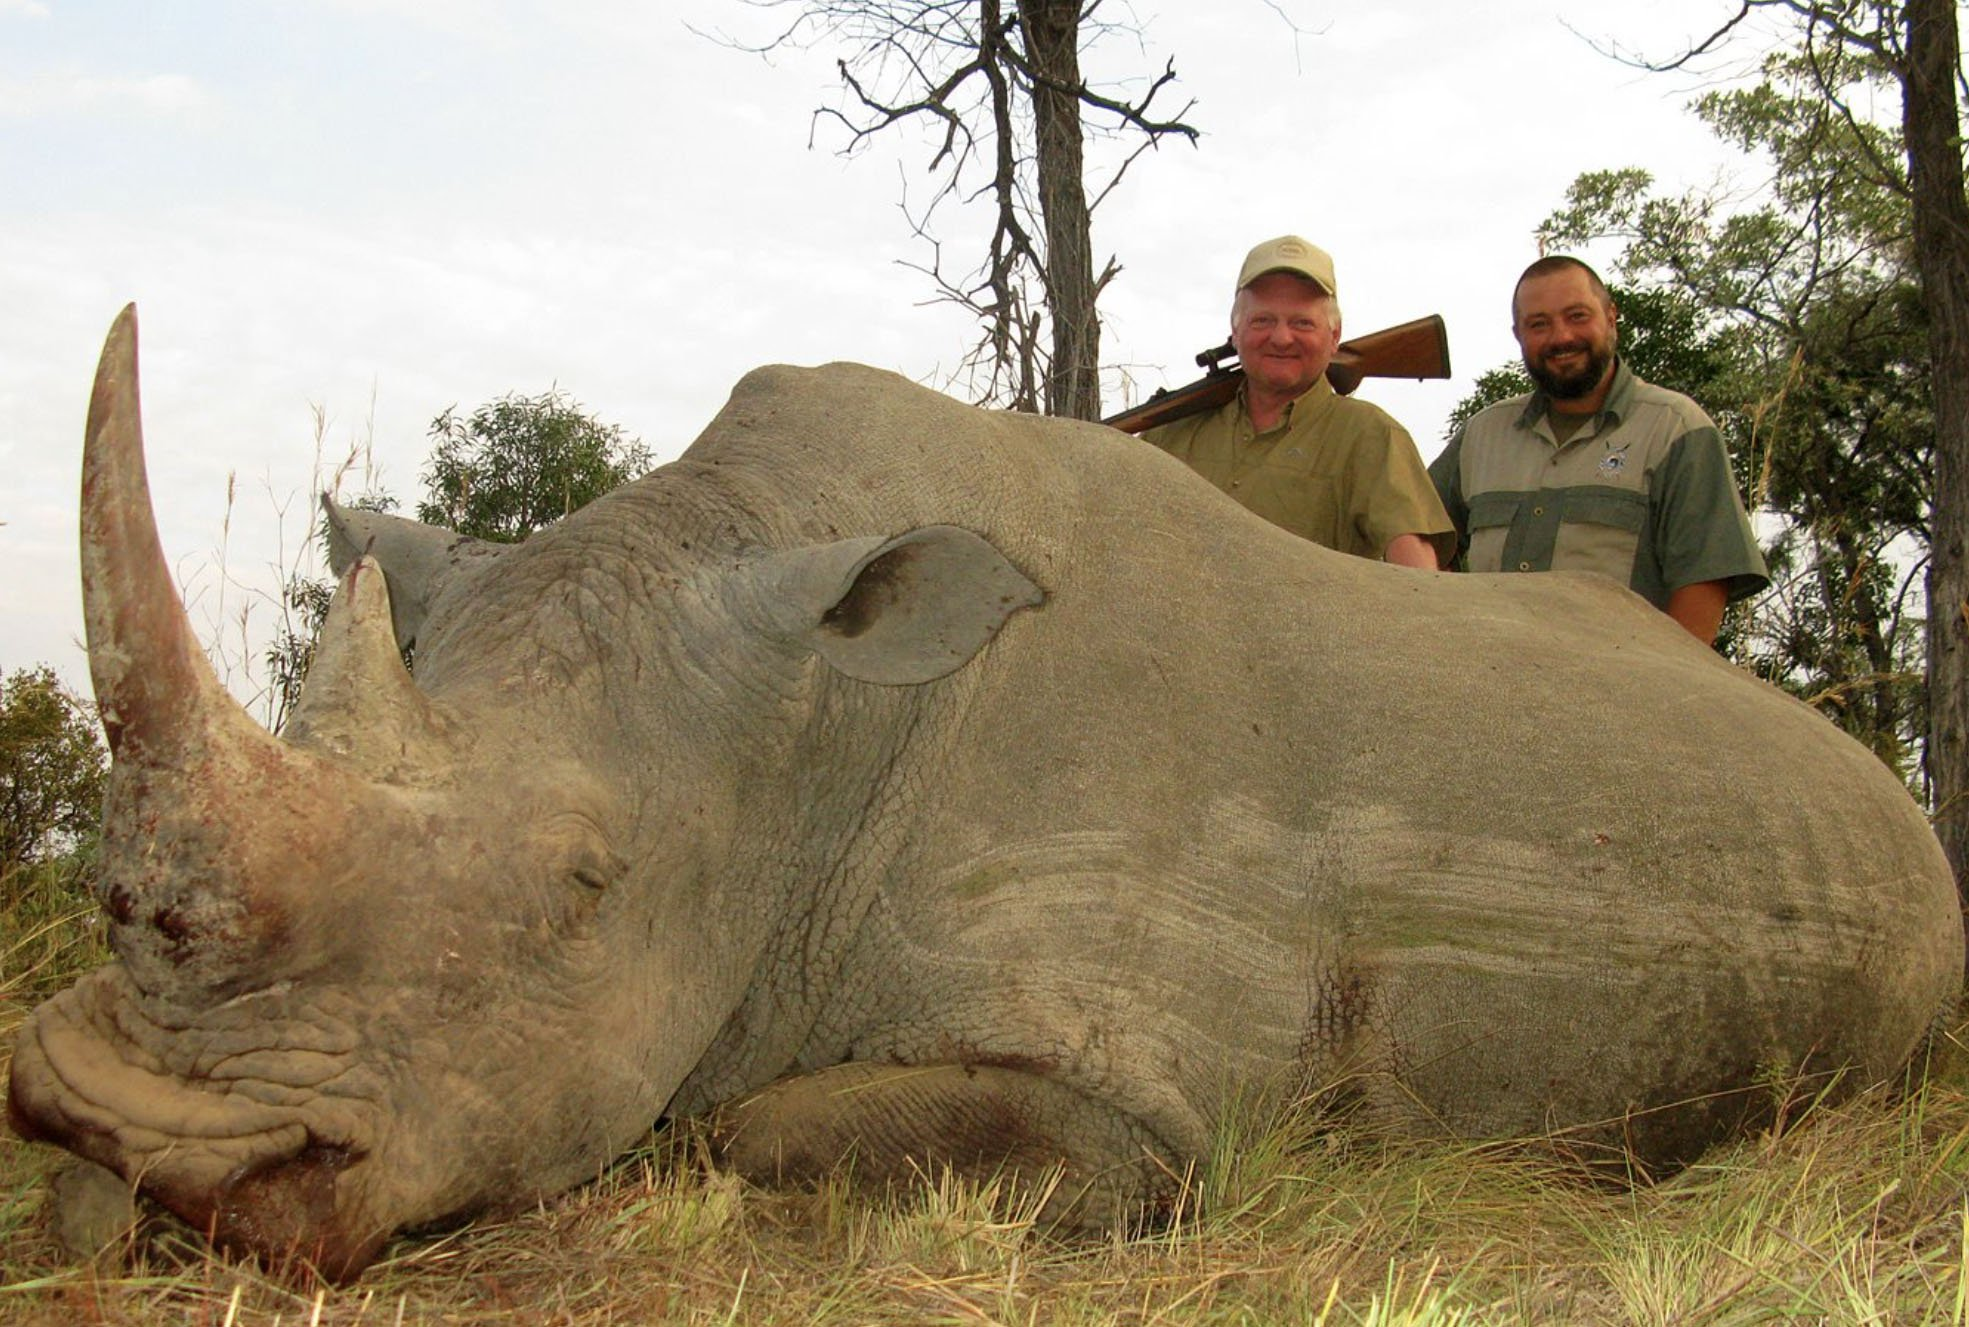 Trophy hunter makes £1,200,000 a year showing people how to kill rhinos and elephants